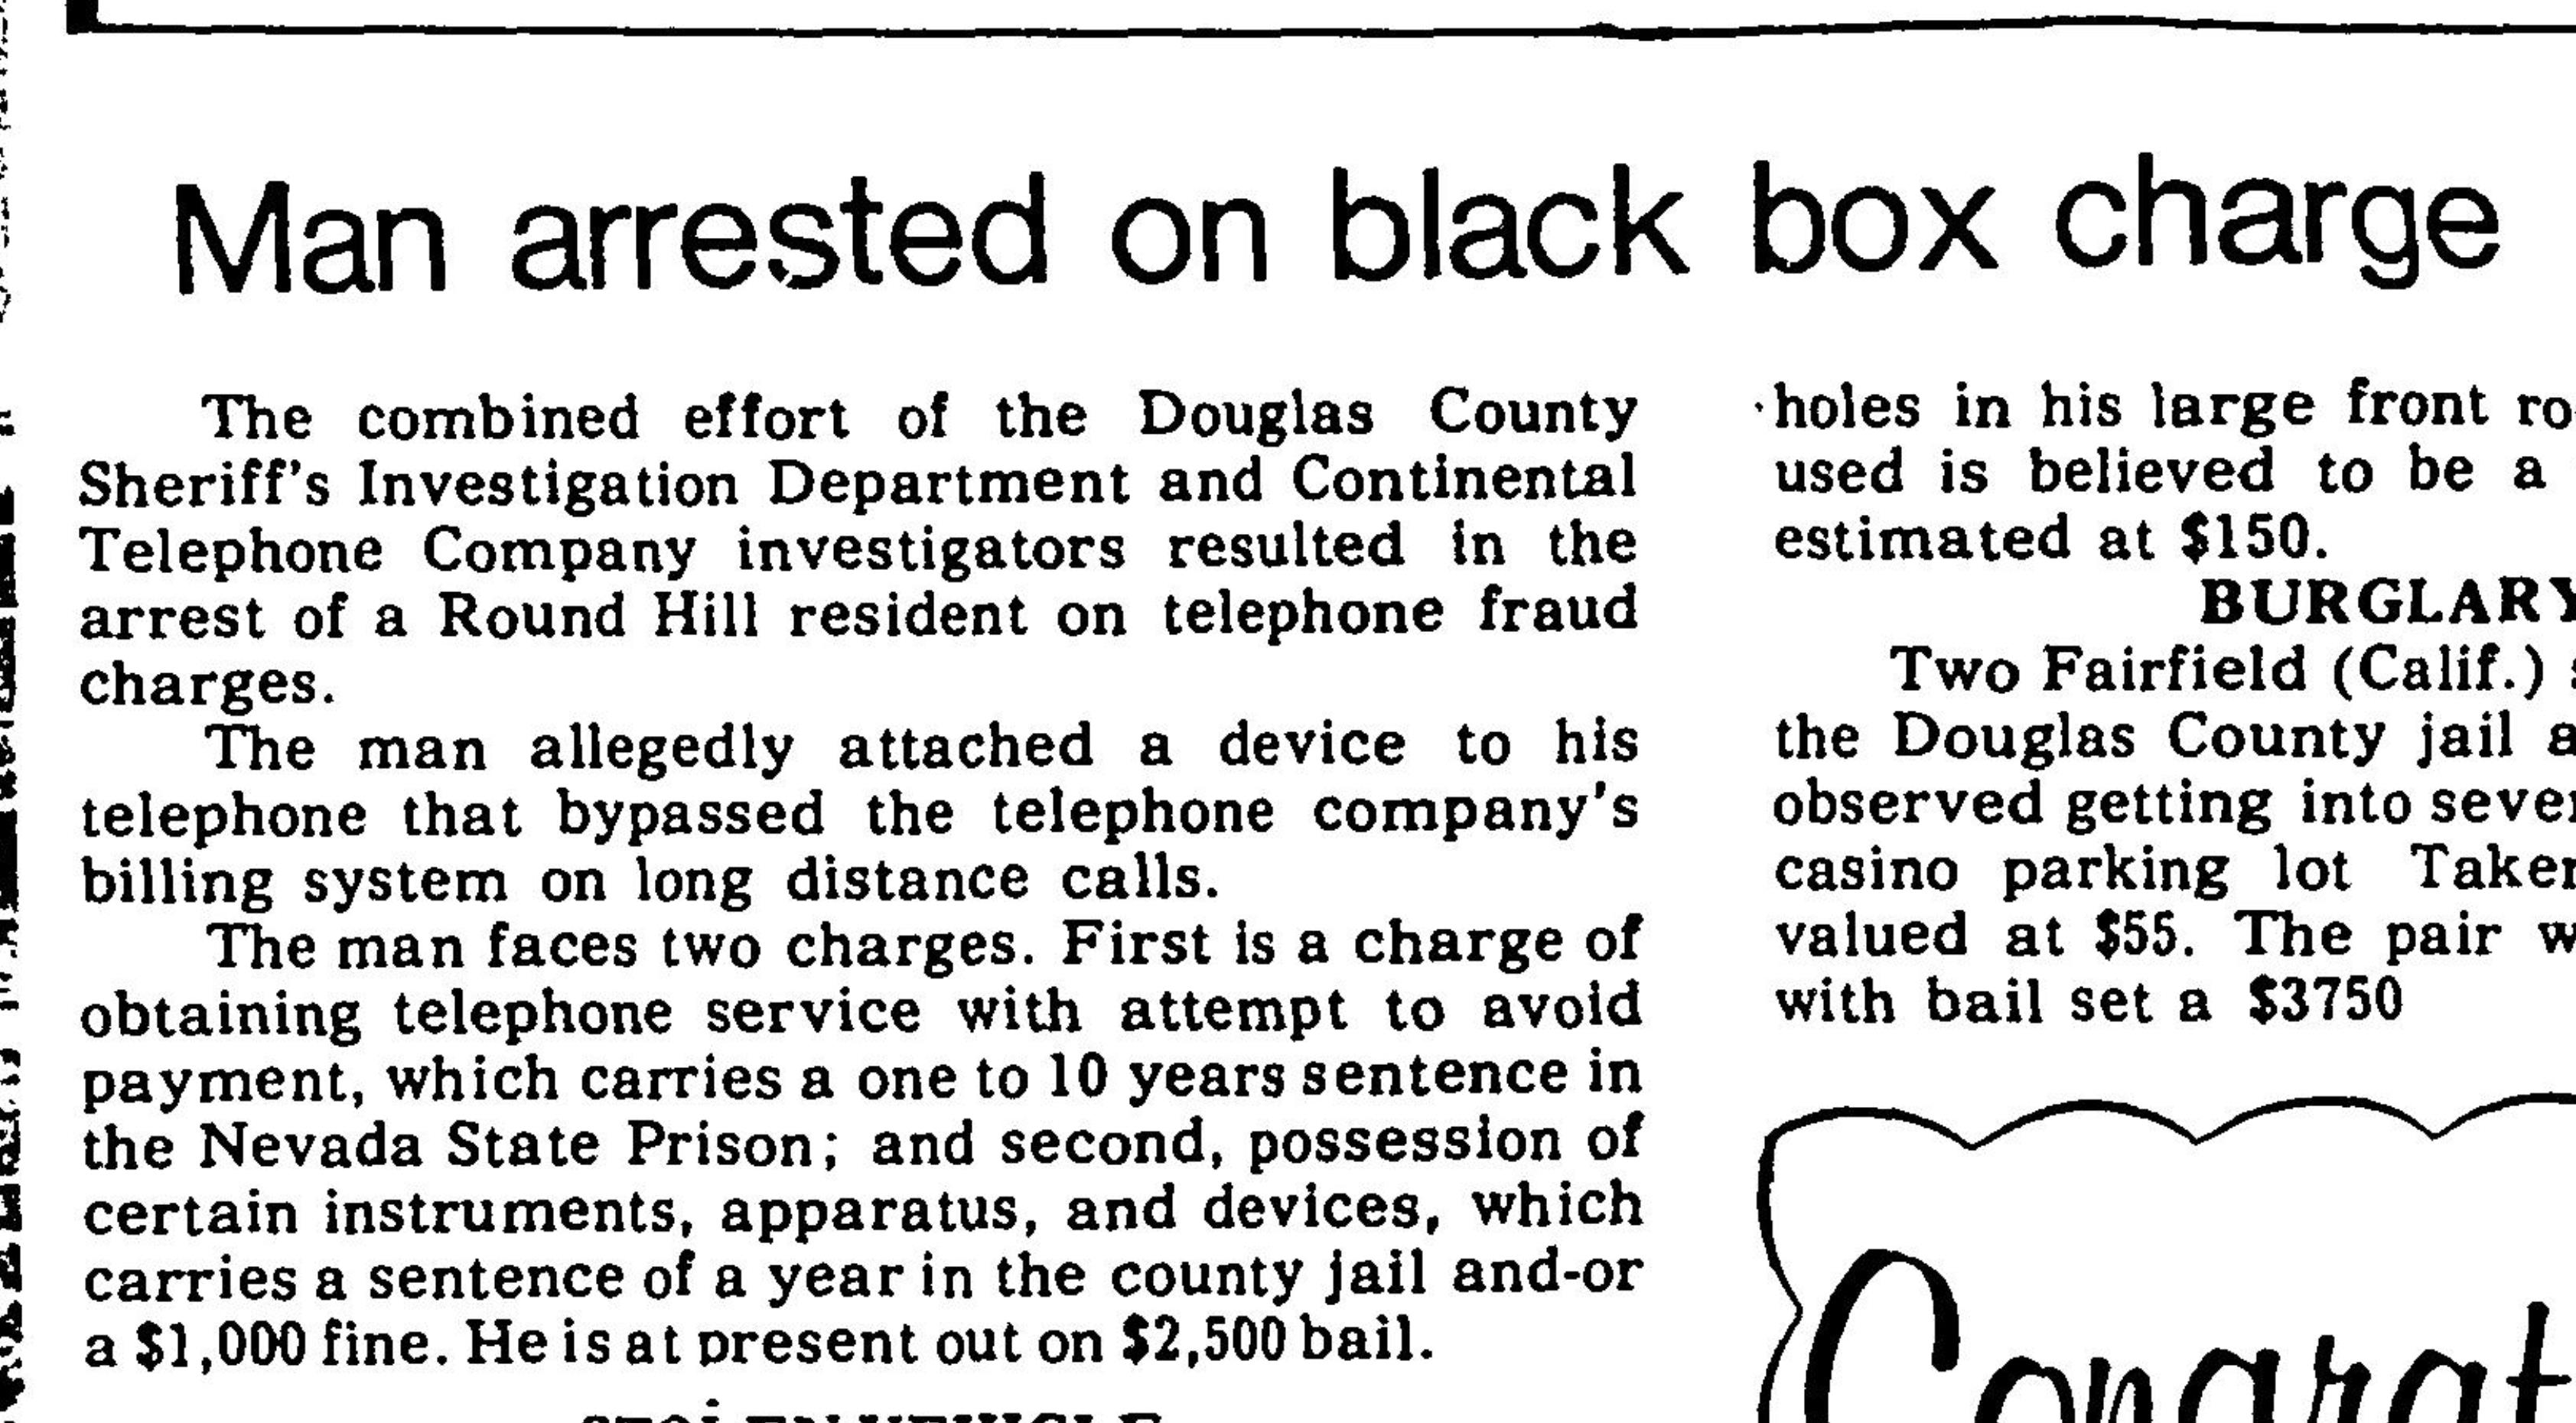 Page 9 of Record Courier,published in Gardnerville, Nevada on Thursday, February 8th, 1979